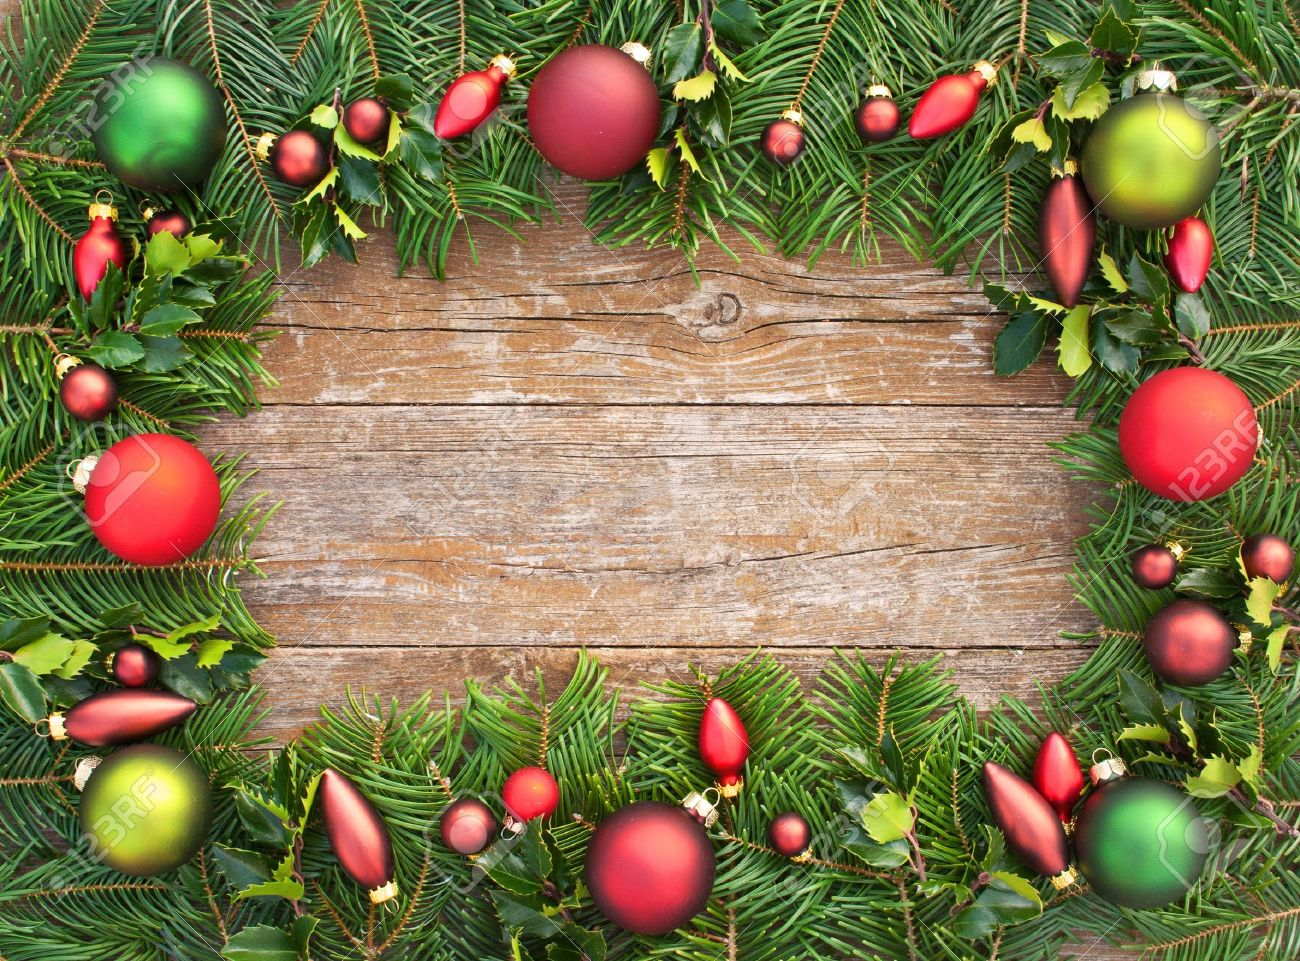 Frame With Christmas Tree Balls And Fir Branches On Wooden Table Christmas  Decoration Stock Photo